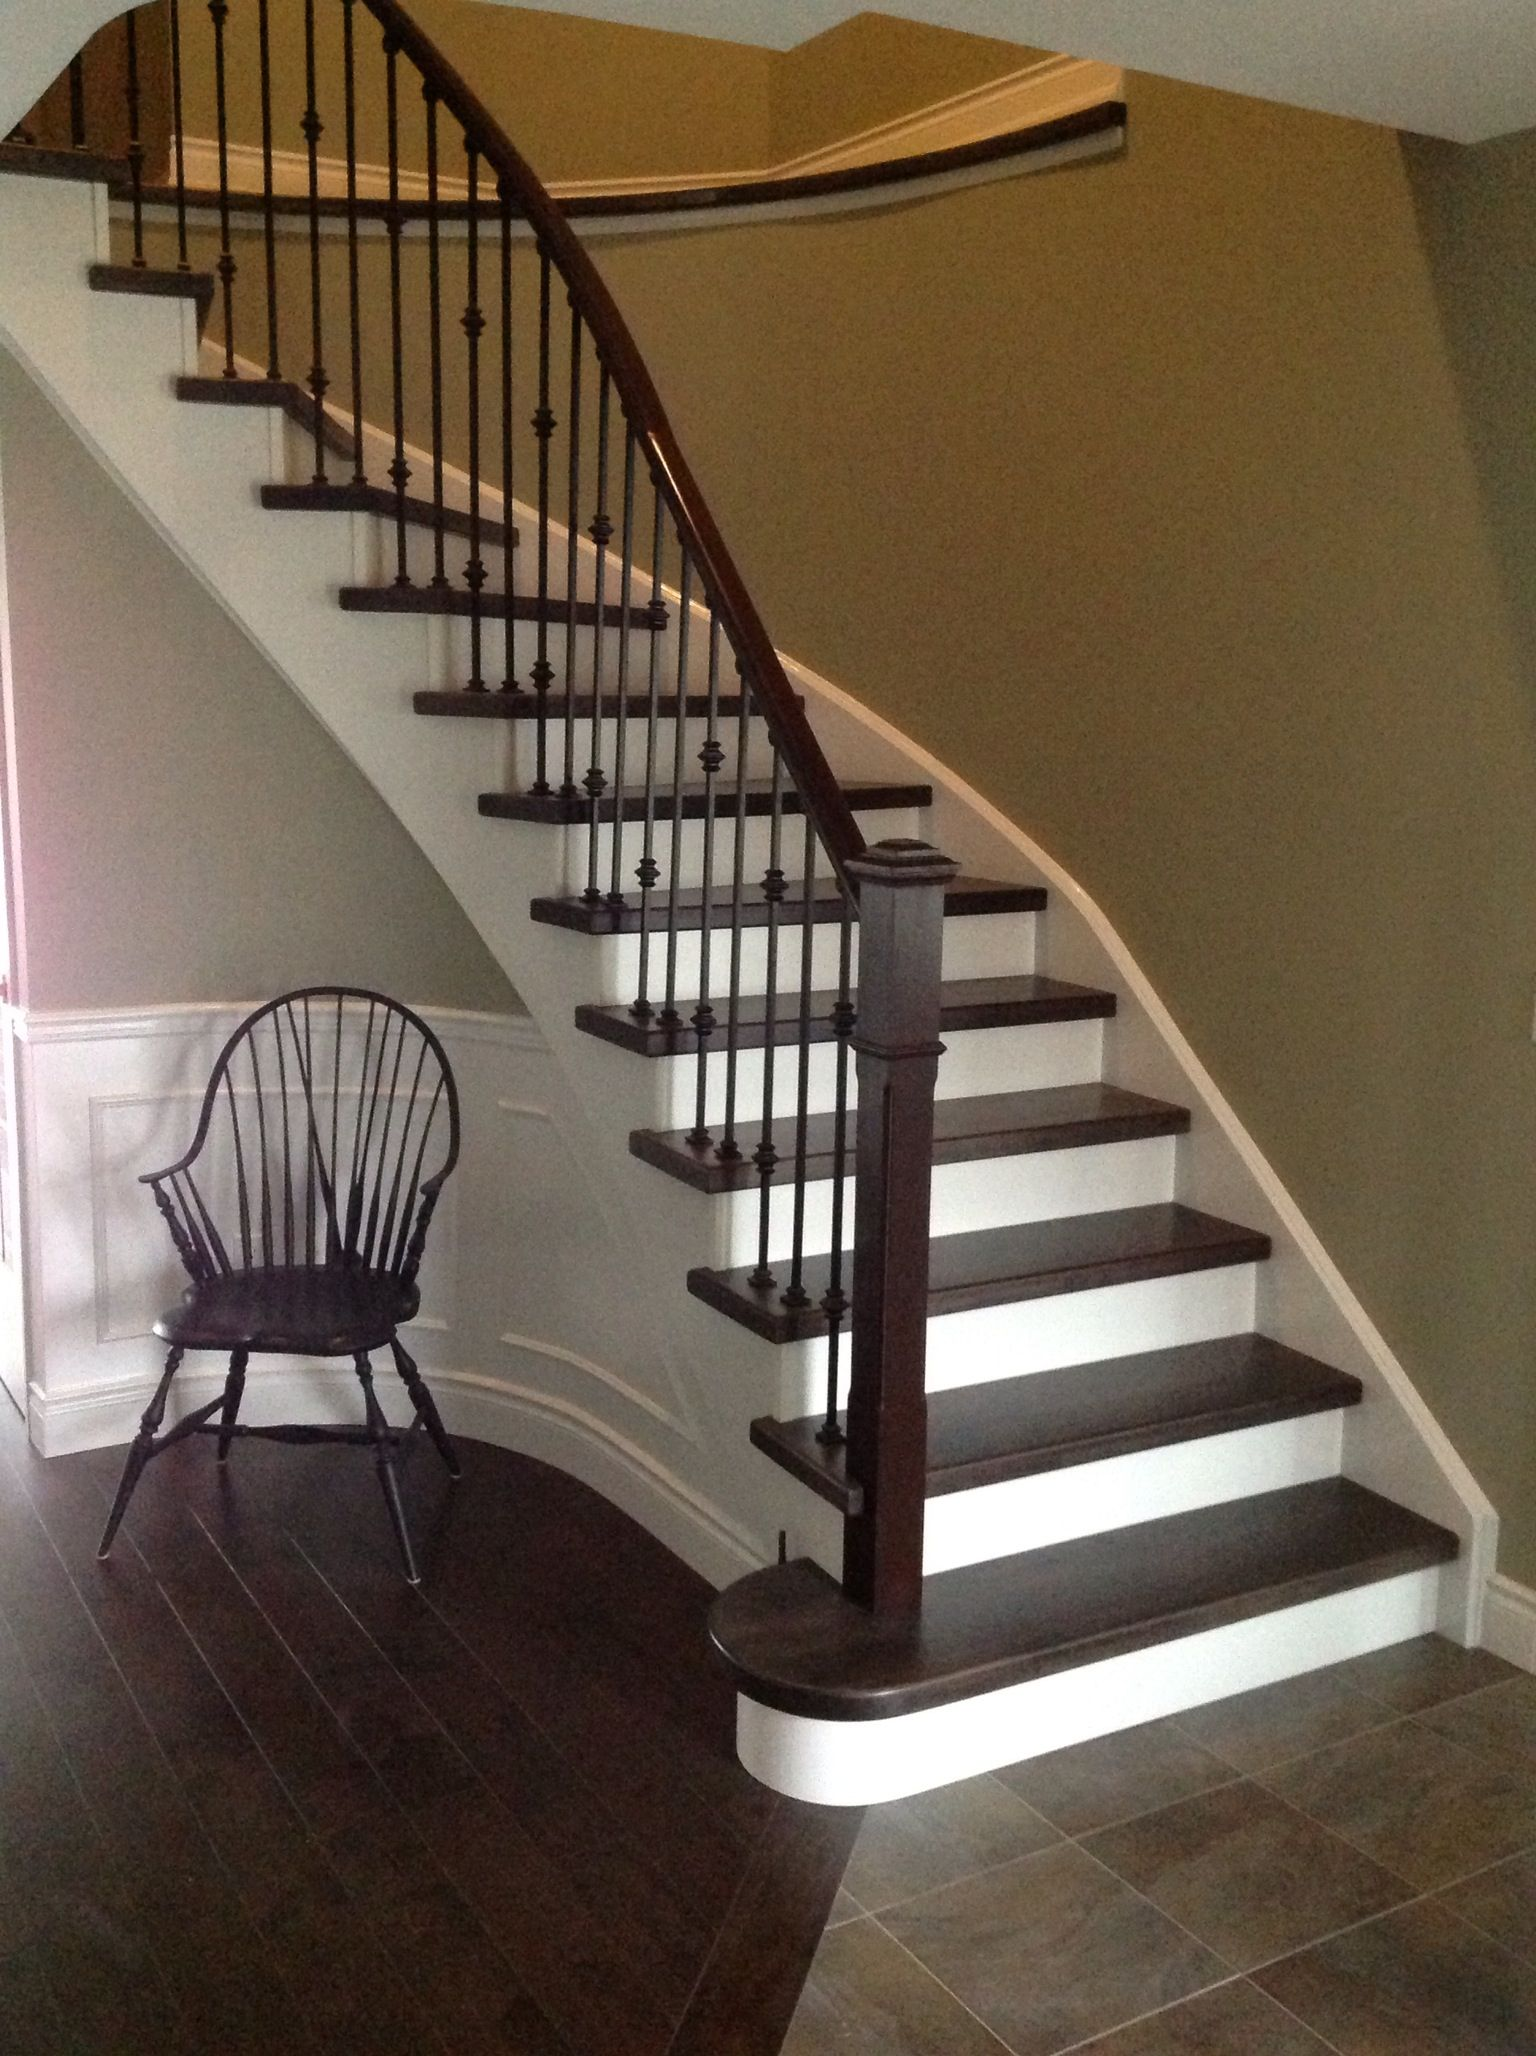 Charmant Dark Wood Stairs With White Risers